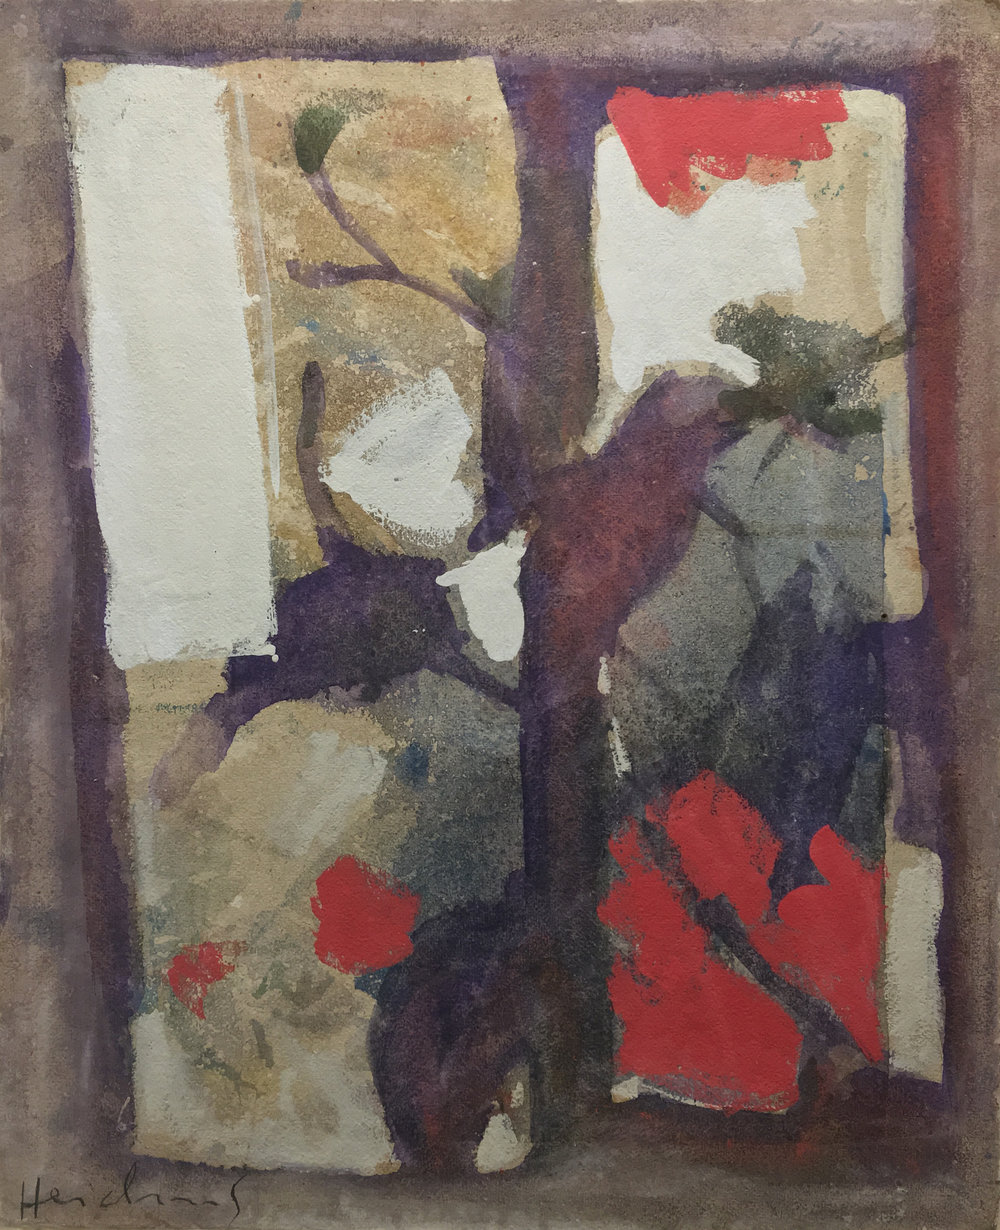 CARL HEIDENREICH,  UNTITLED , N.D. OIL ON CANVAS. 40 X 33.75 INCHES. COLLECTION OF THE CARL HEIDENREICH FOUNDATION.